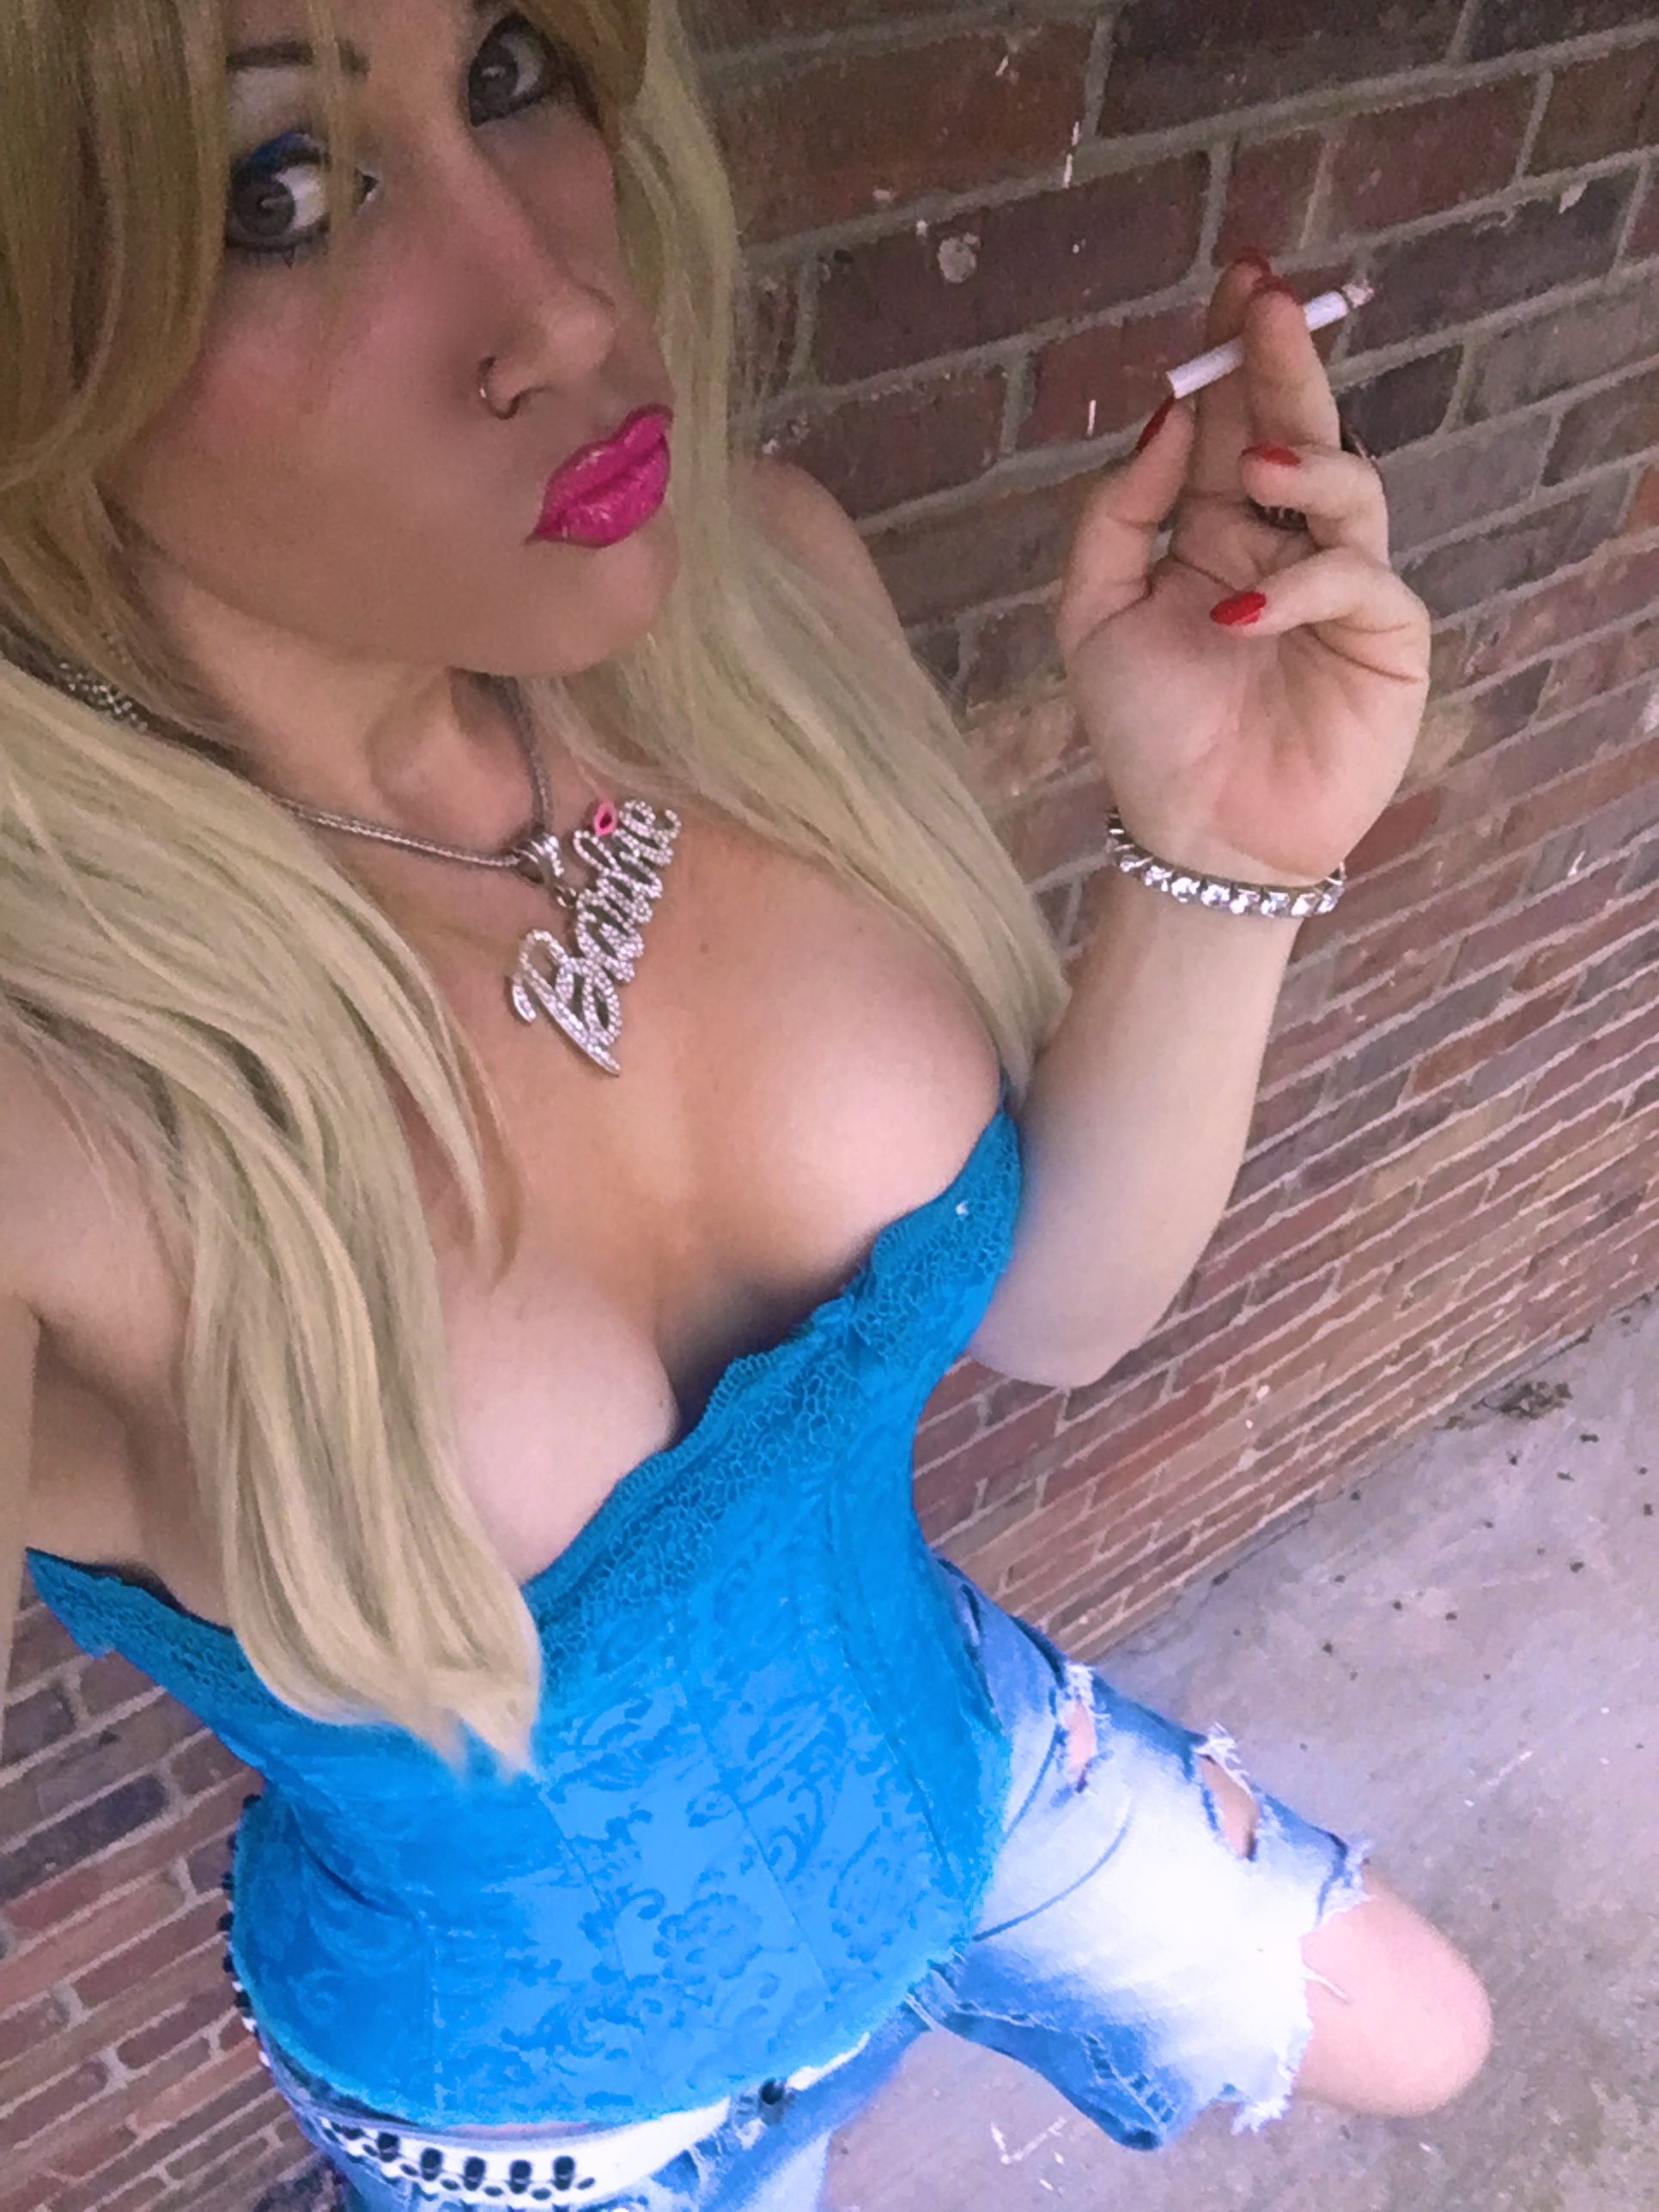 Kimber Haven XXXBios - Kimber Haven blonde hair sfw pics - TS Kimber Haven smoking in sexy blue corset and ripped blue jeans - Kimber Haven porn pics sfw